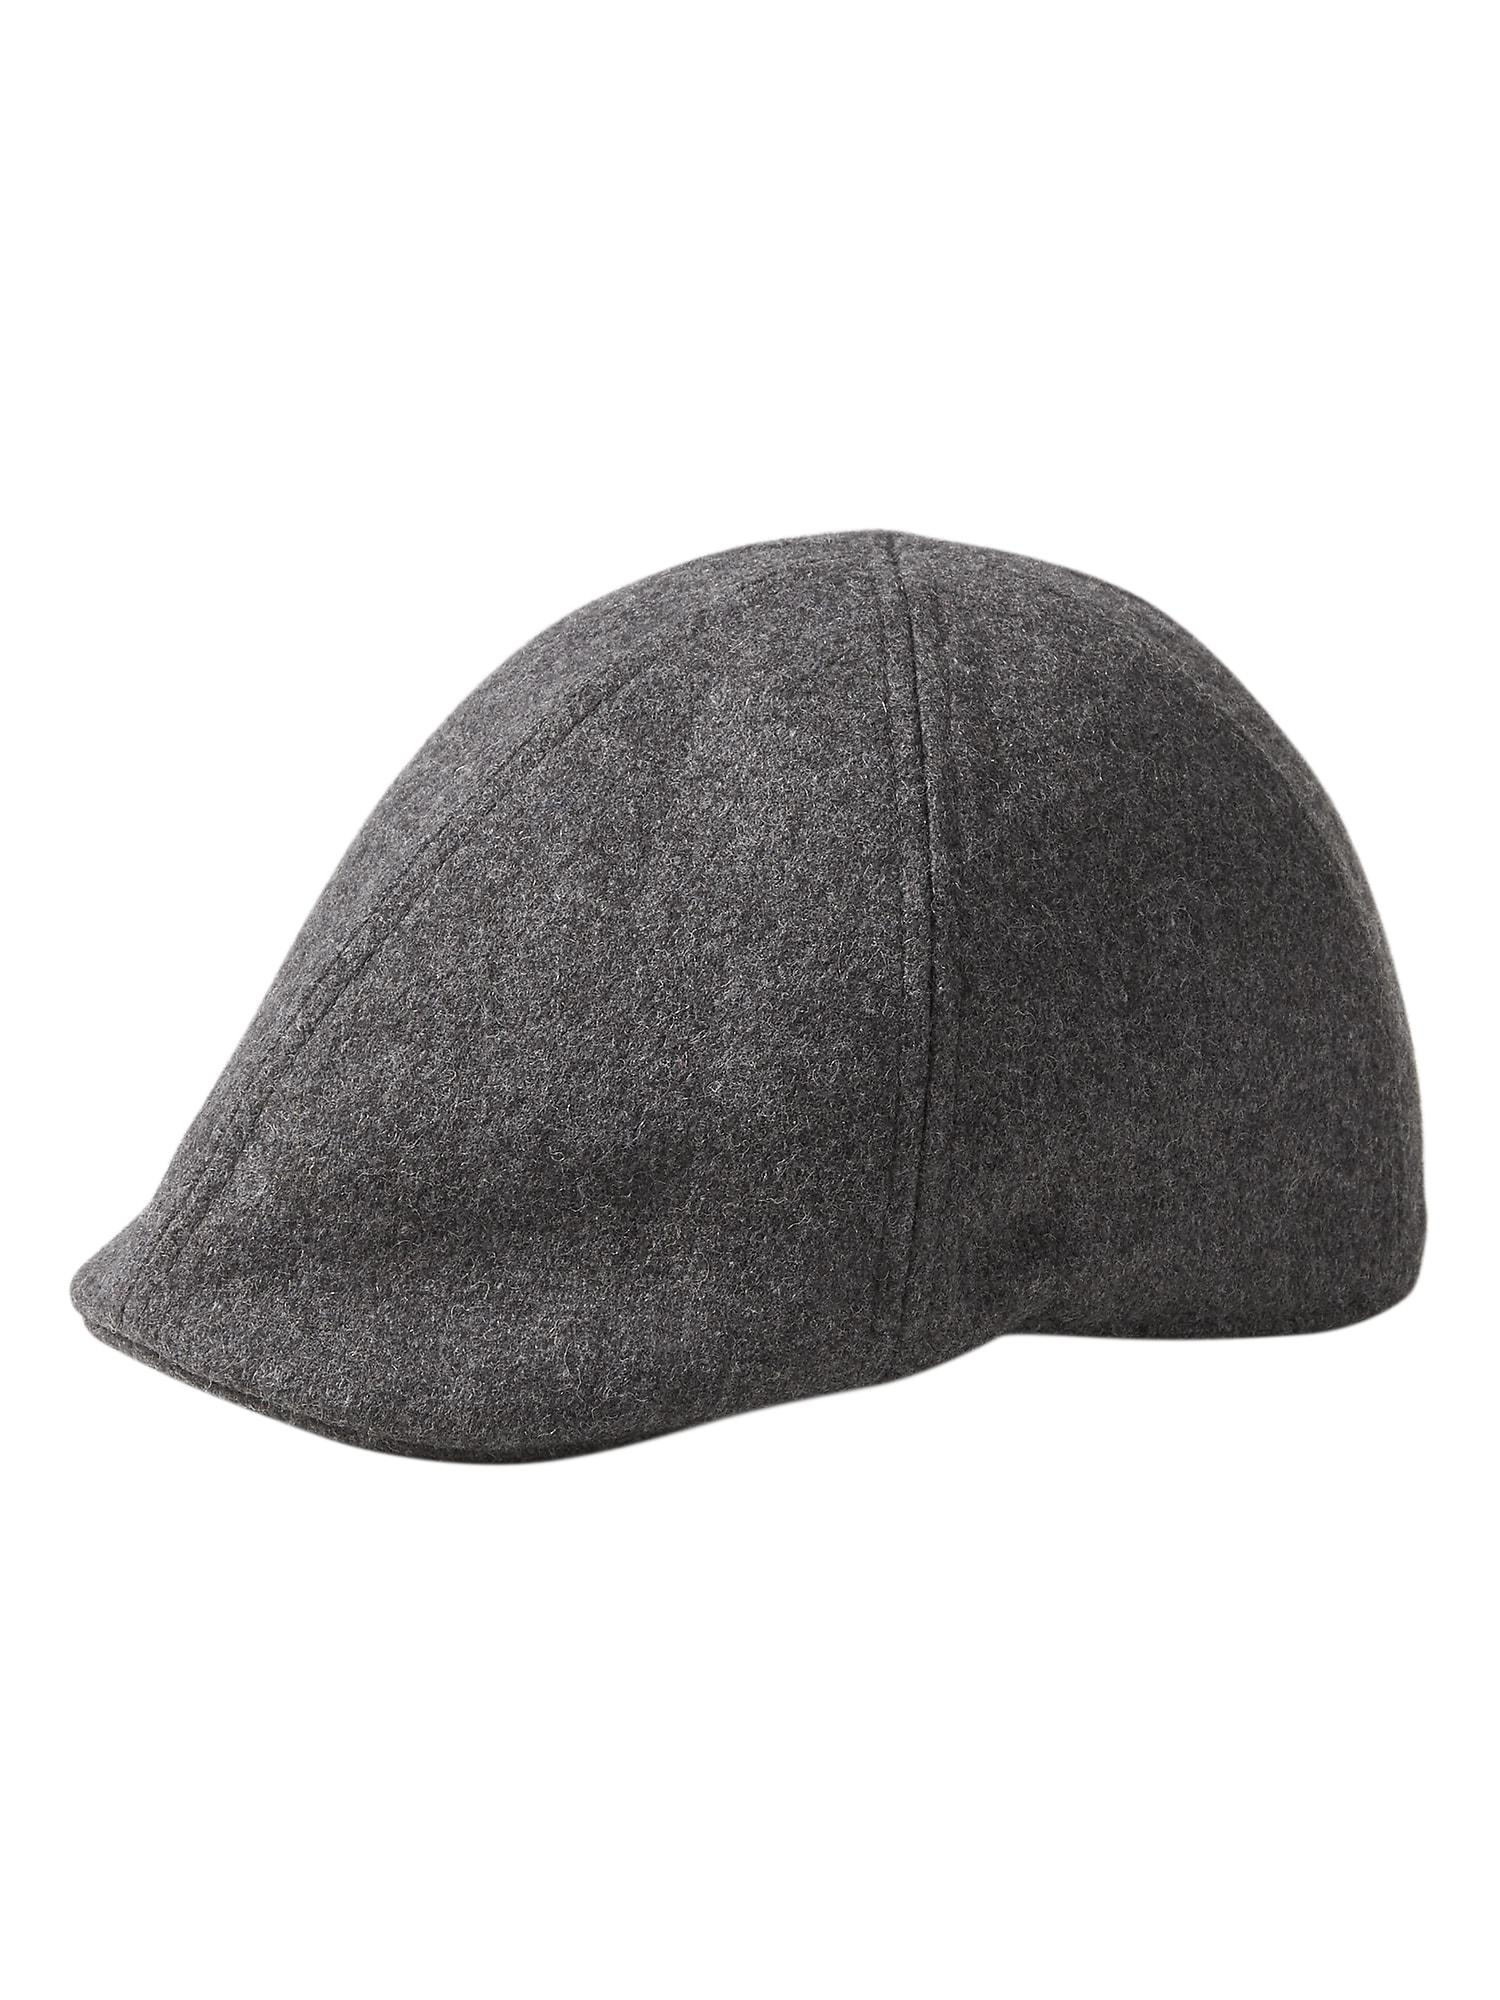 37634c770 Lyst - Banana Republic Factory Driver Hat in Gray for Men